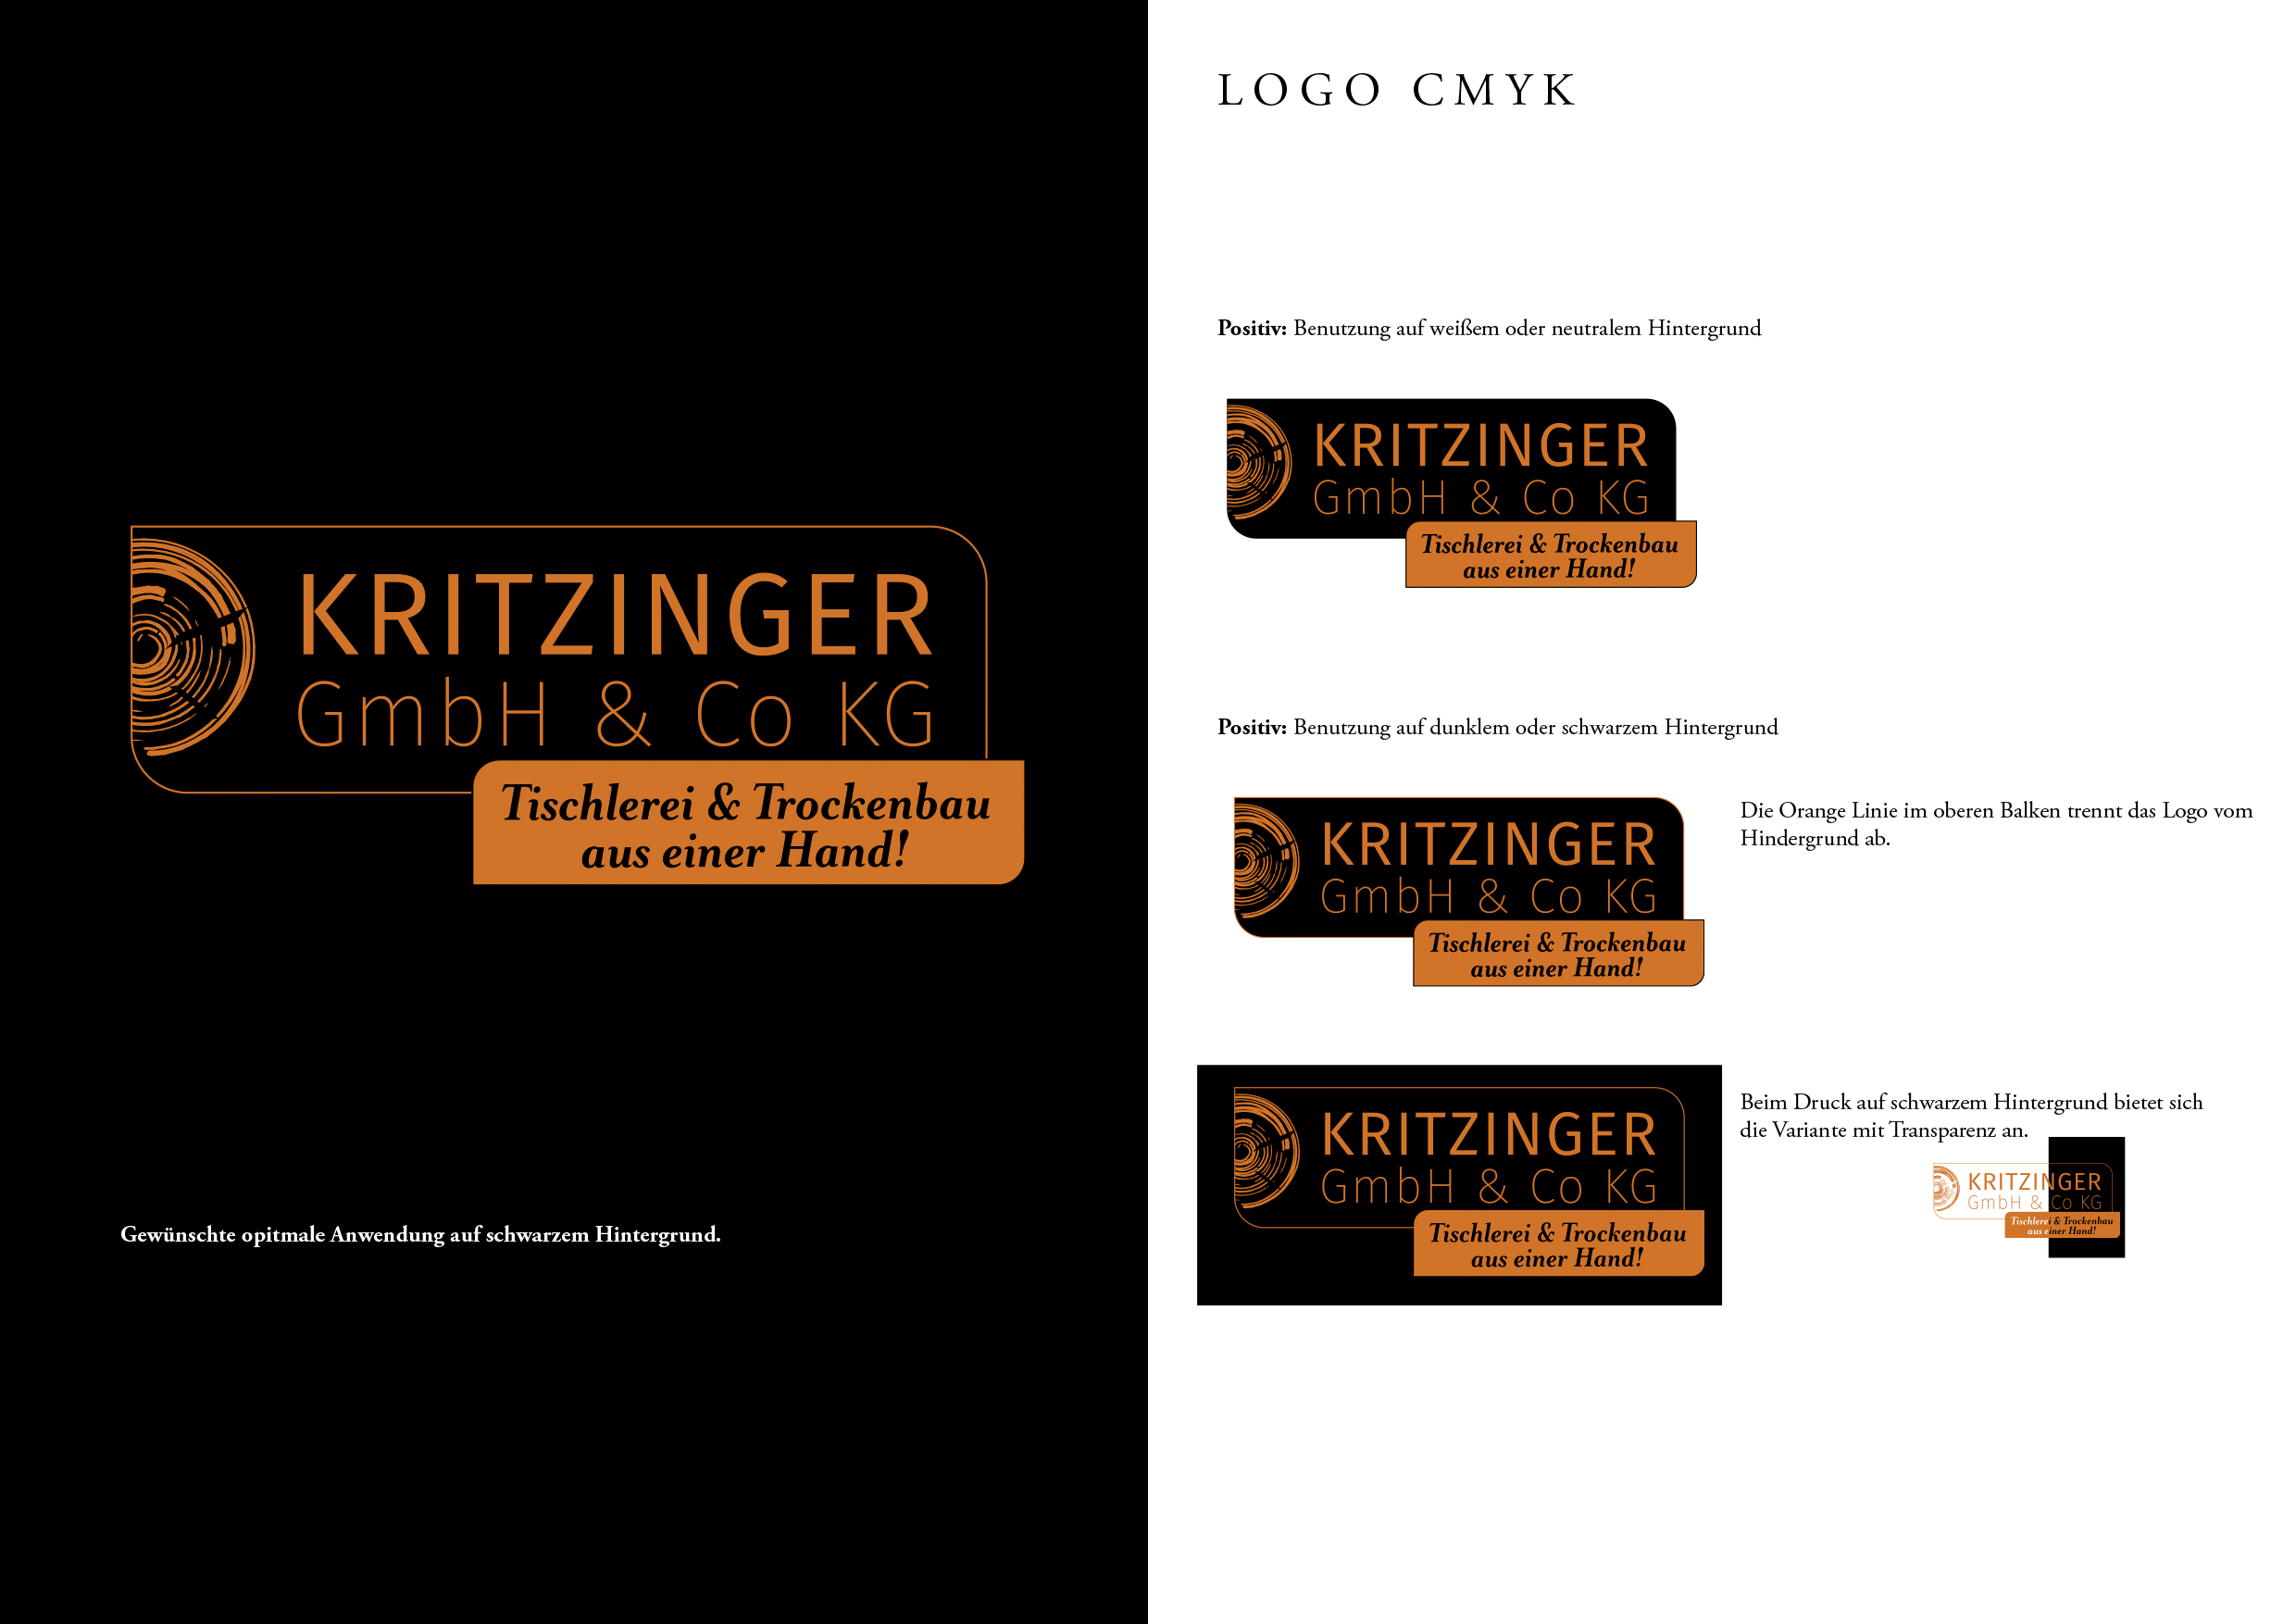 Design Manual, addesign, kritzinger, kritzinger lauterach